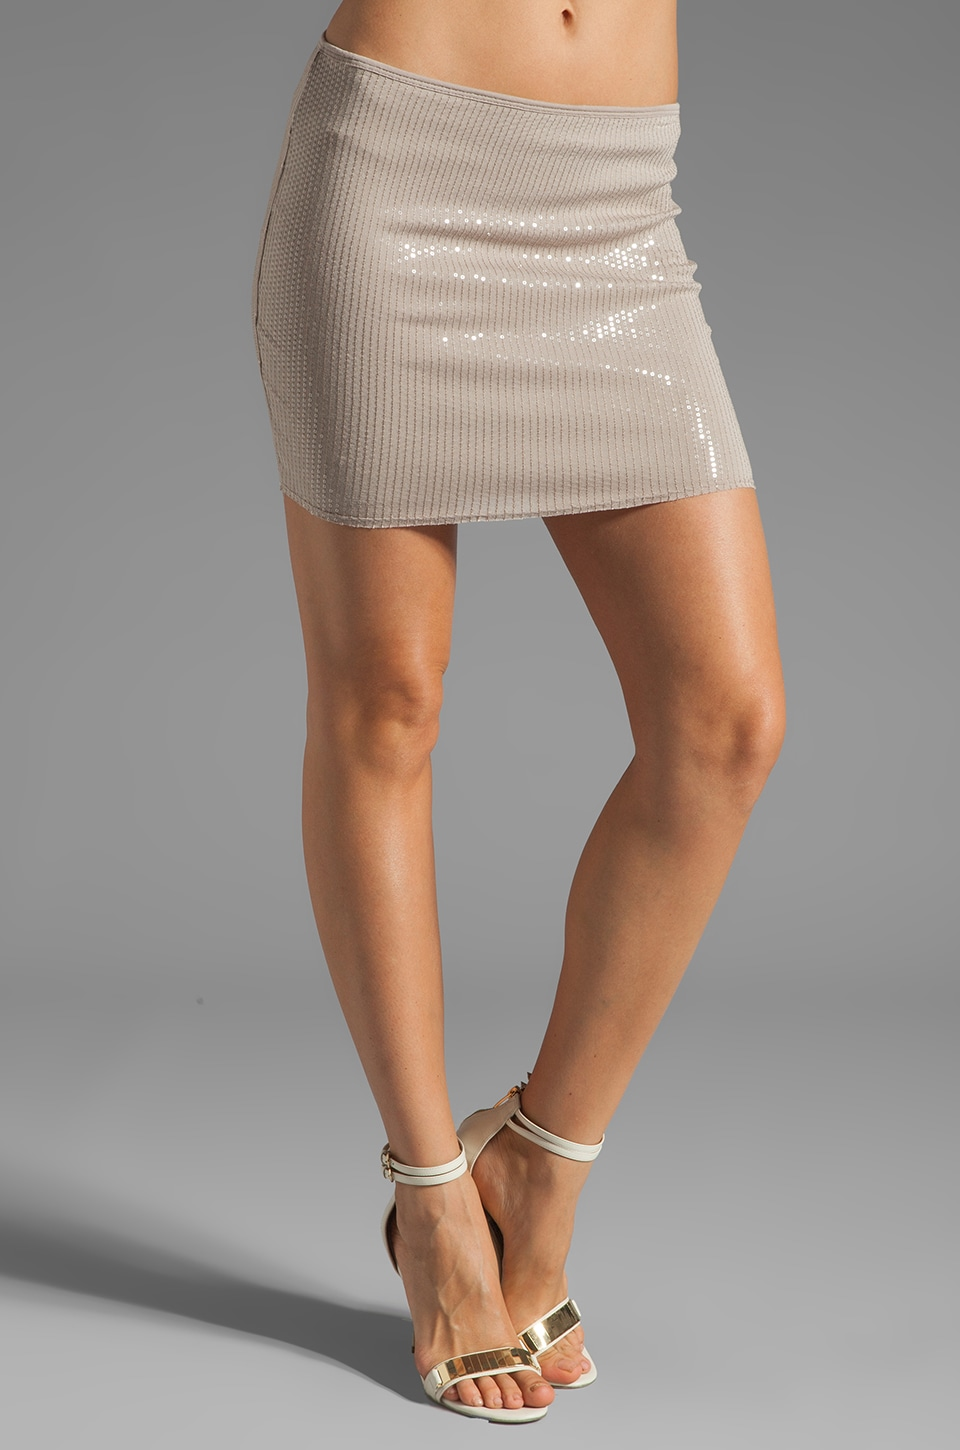 Bailey 44 Sequin Plankton Skirt in Beige